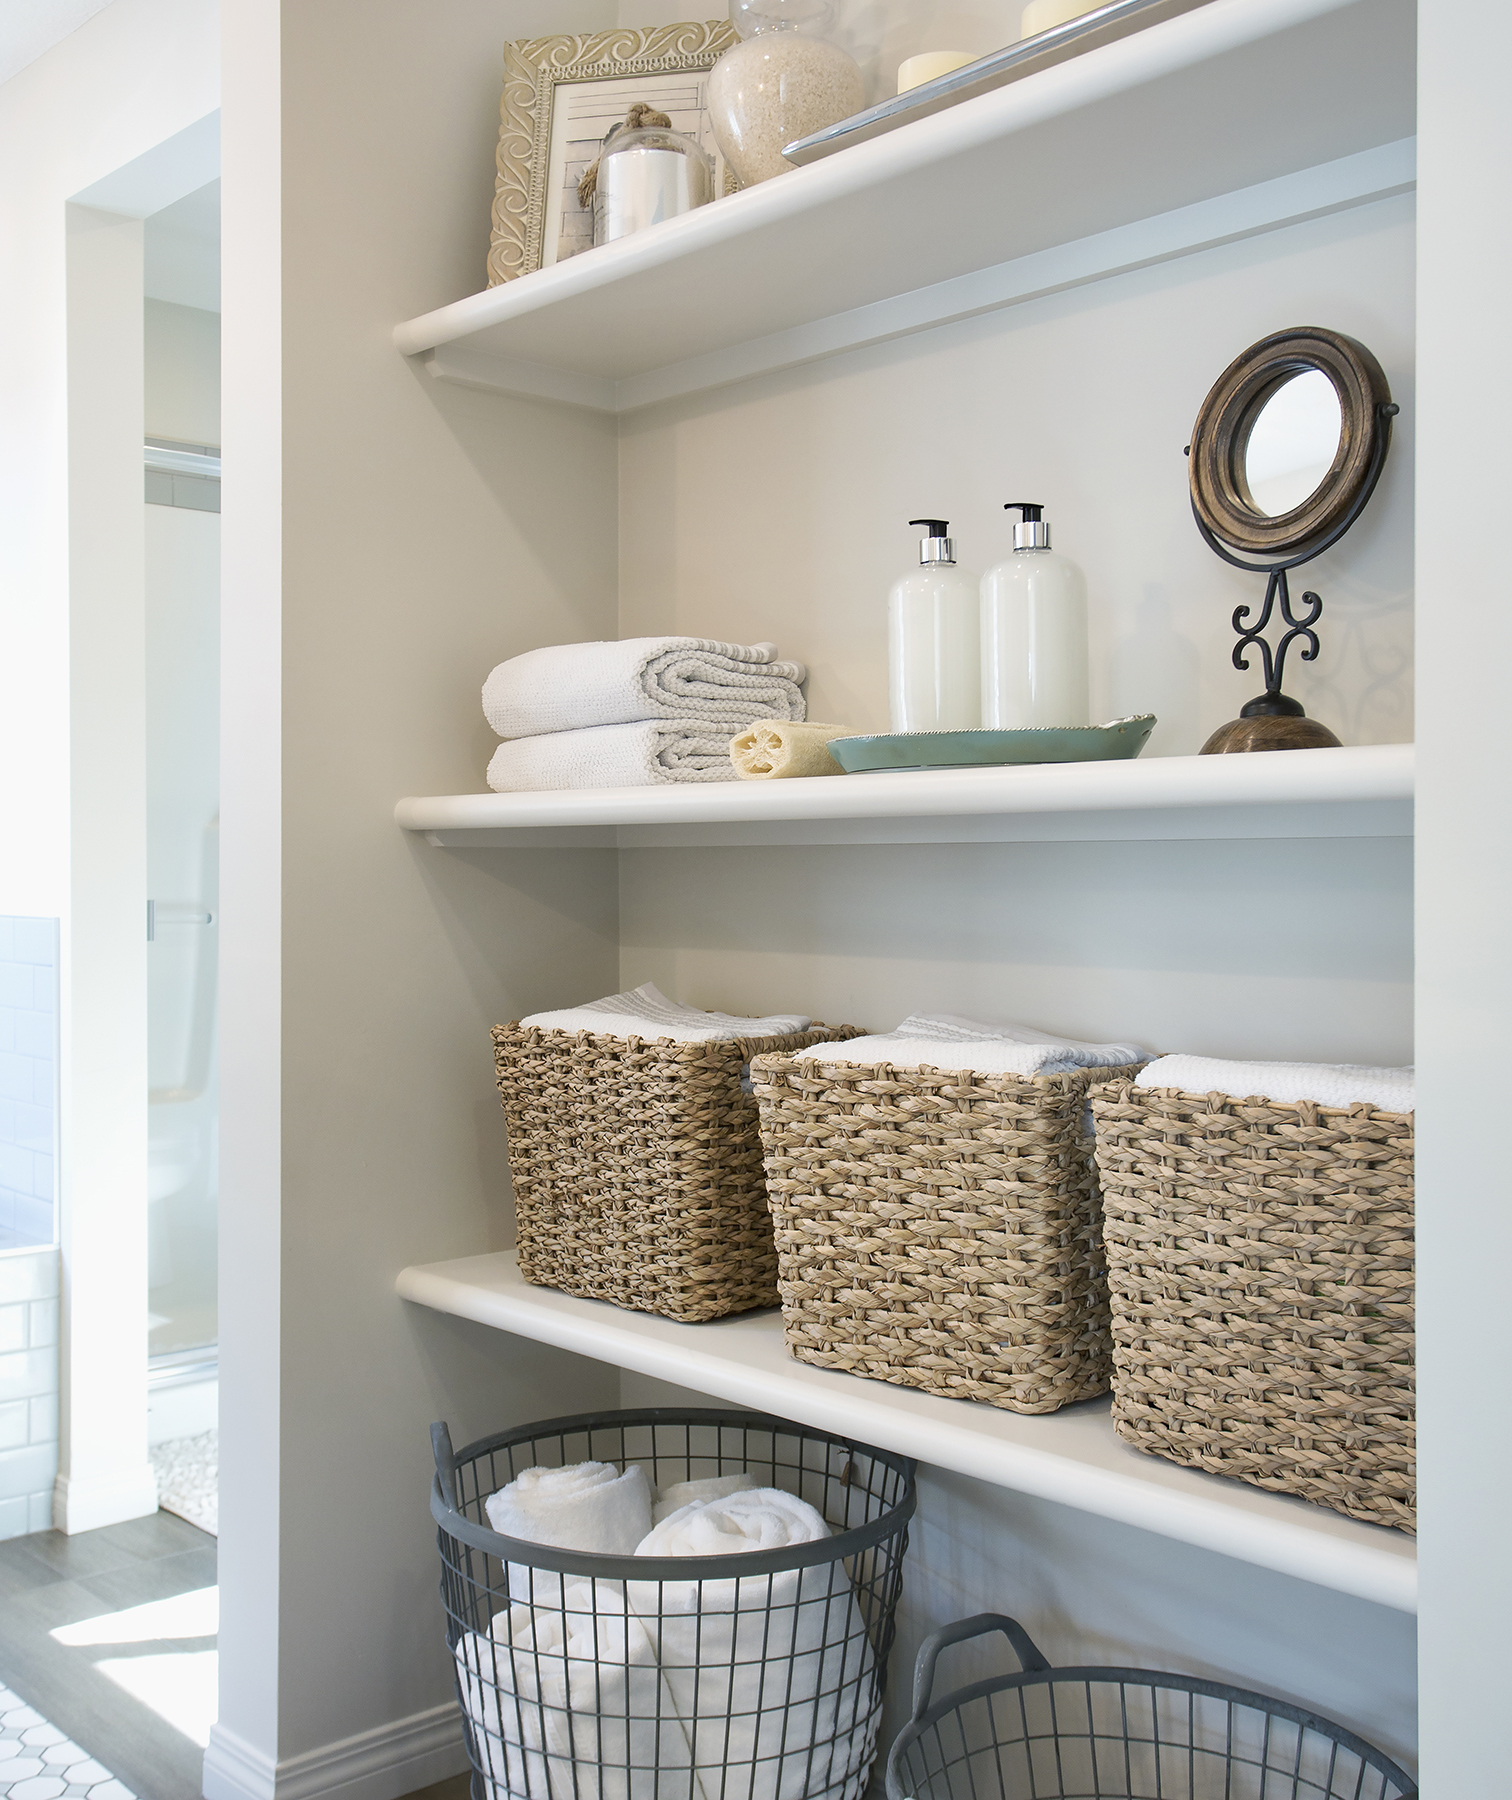 Bathroom shelves with bins